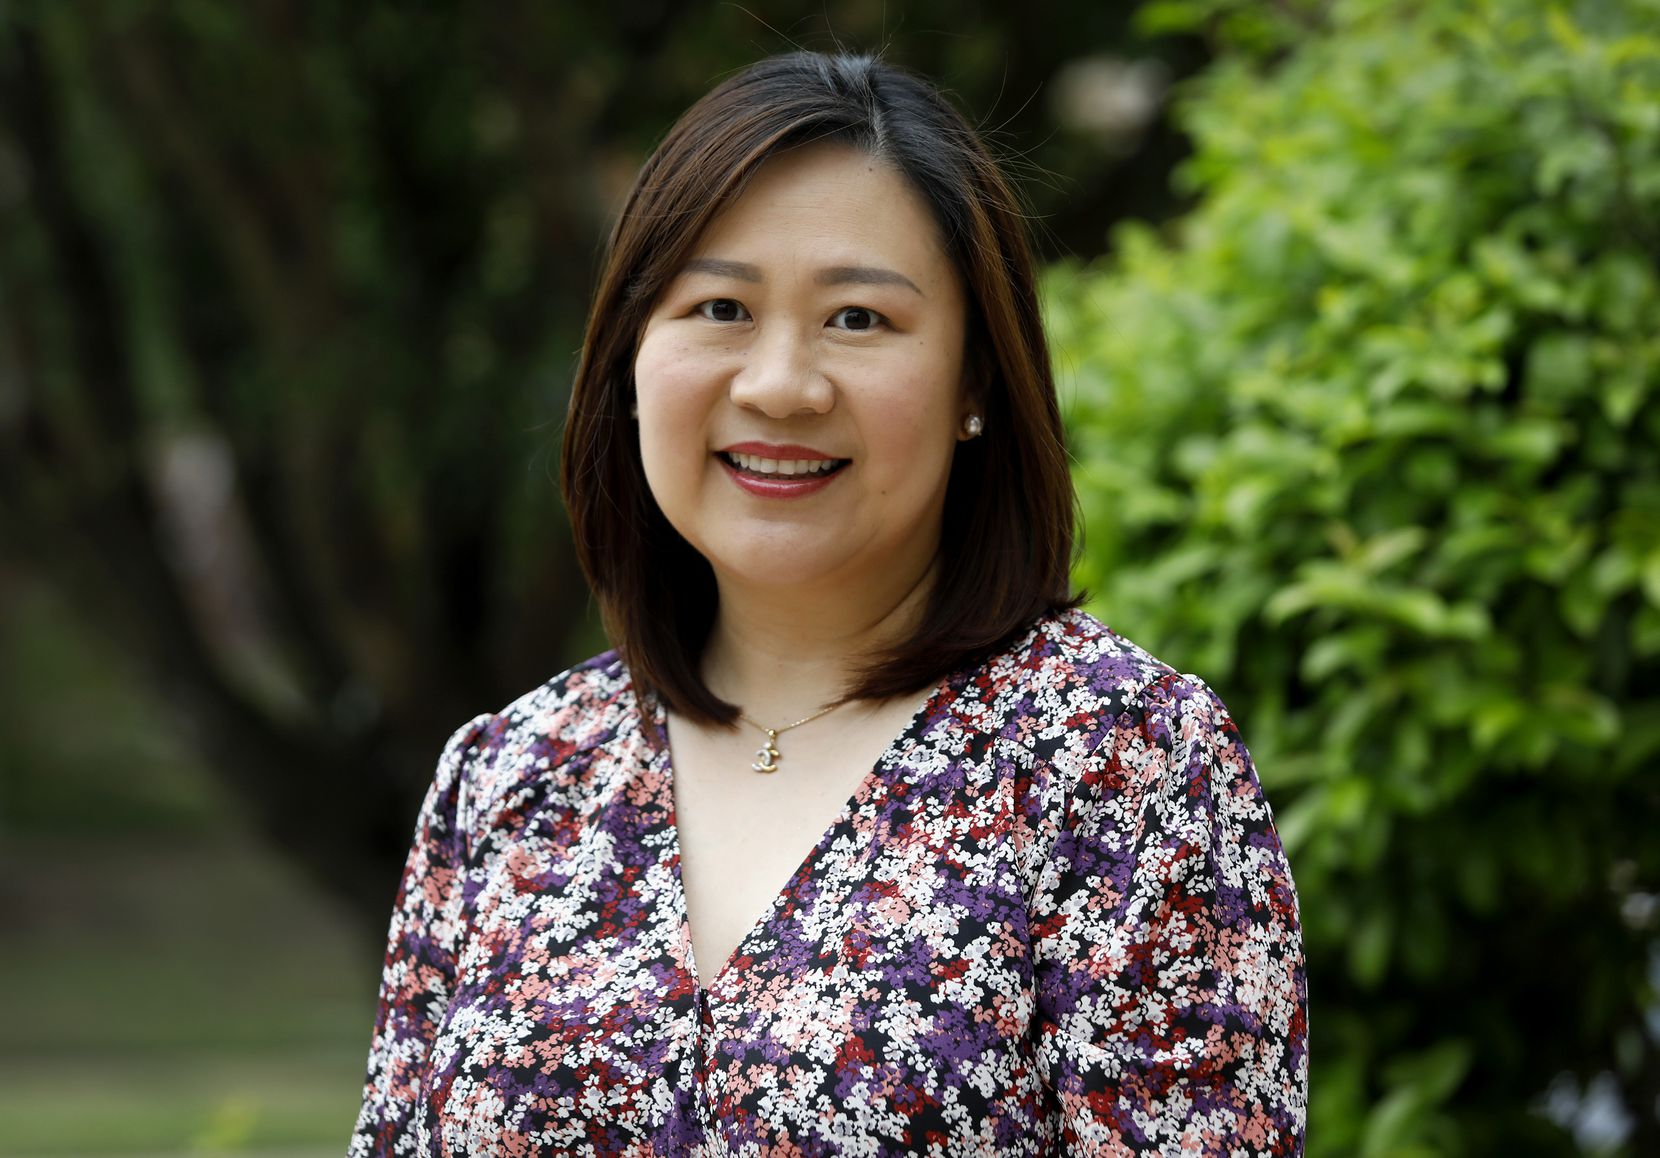 Shirley Yu was laid off last summer, at least the eighth time she had lost a tech job since the 1990s. After adding more skills and credentials, she was recently hired as a project manager at AT&T.